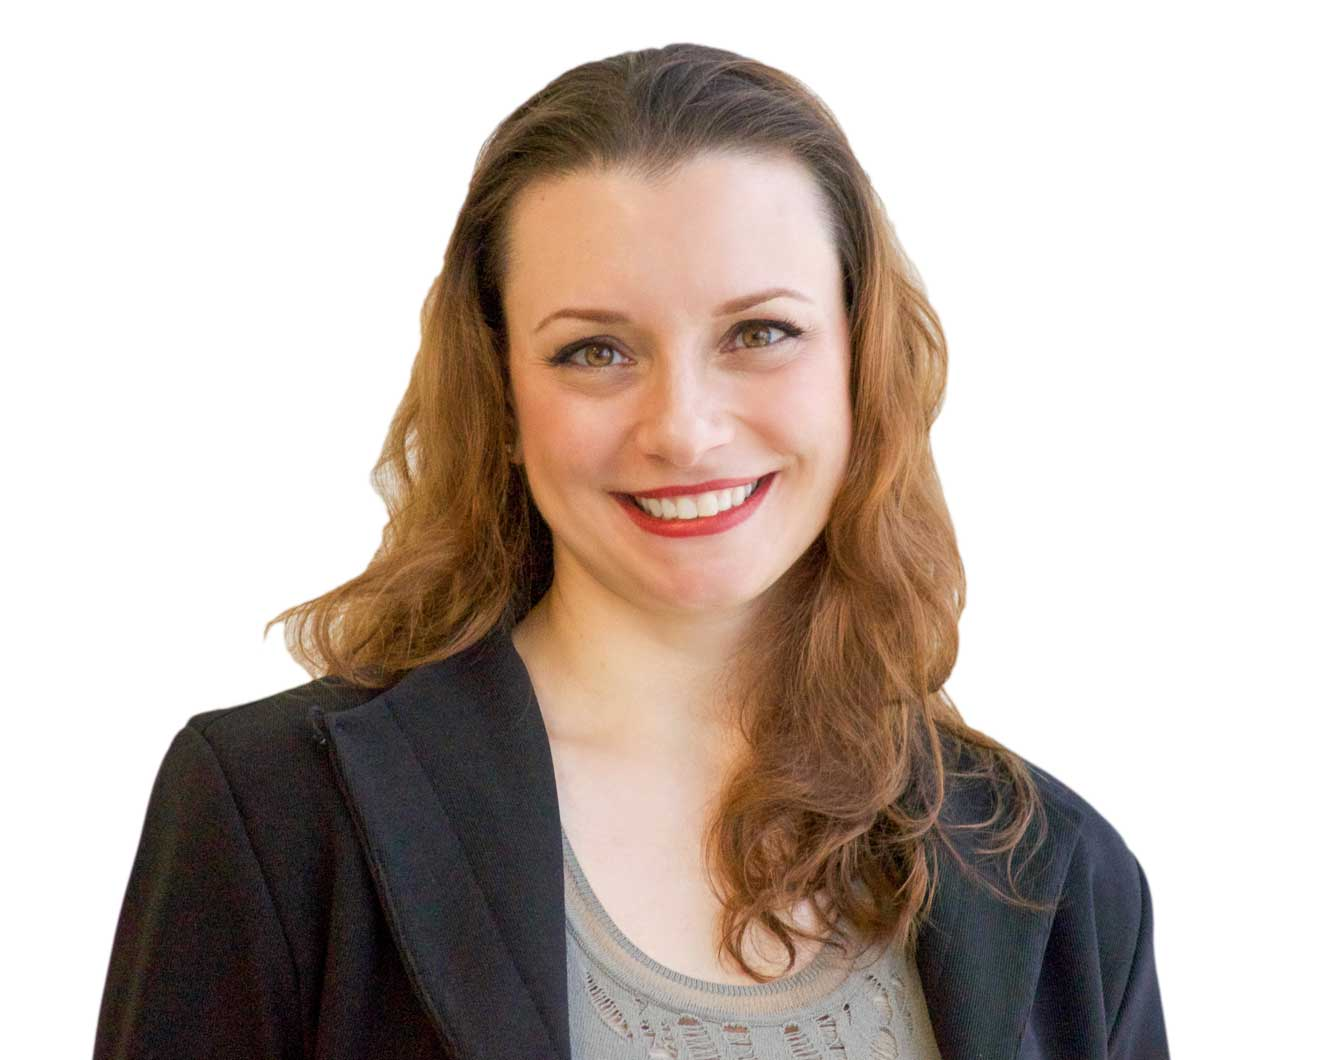 Profile image of Houston Law Firm team member Kelly Garrison.